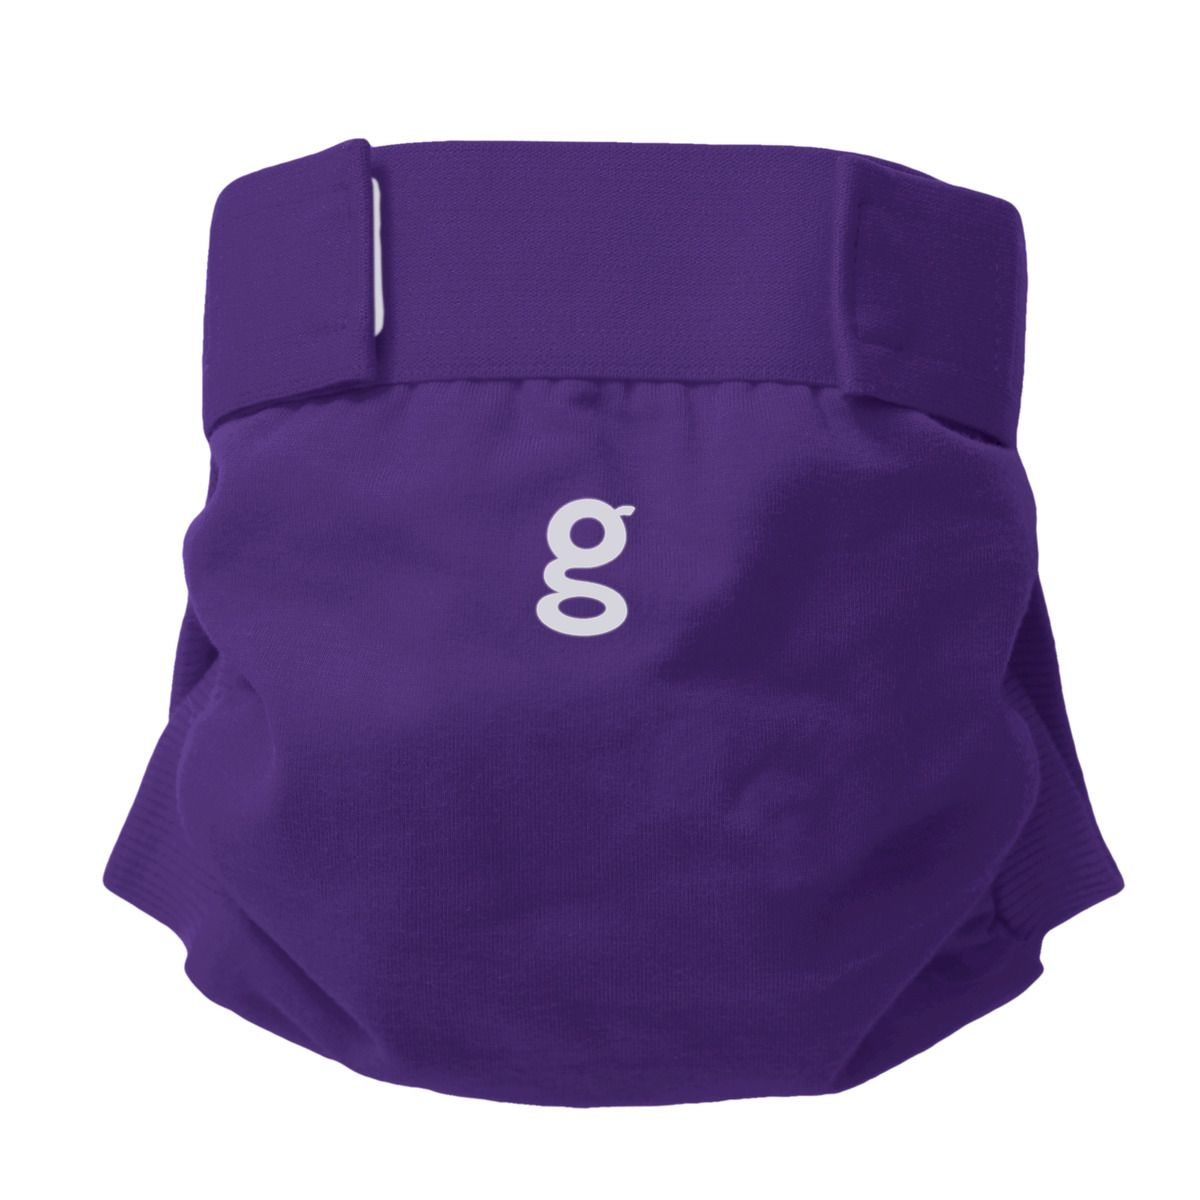 New gDiapers gPants Cloth Diaper Cover You Pick Color Size